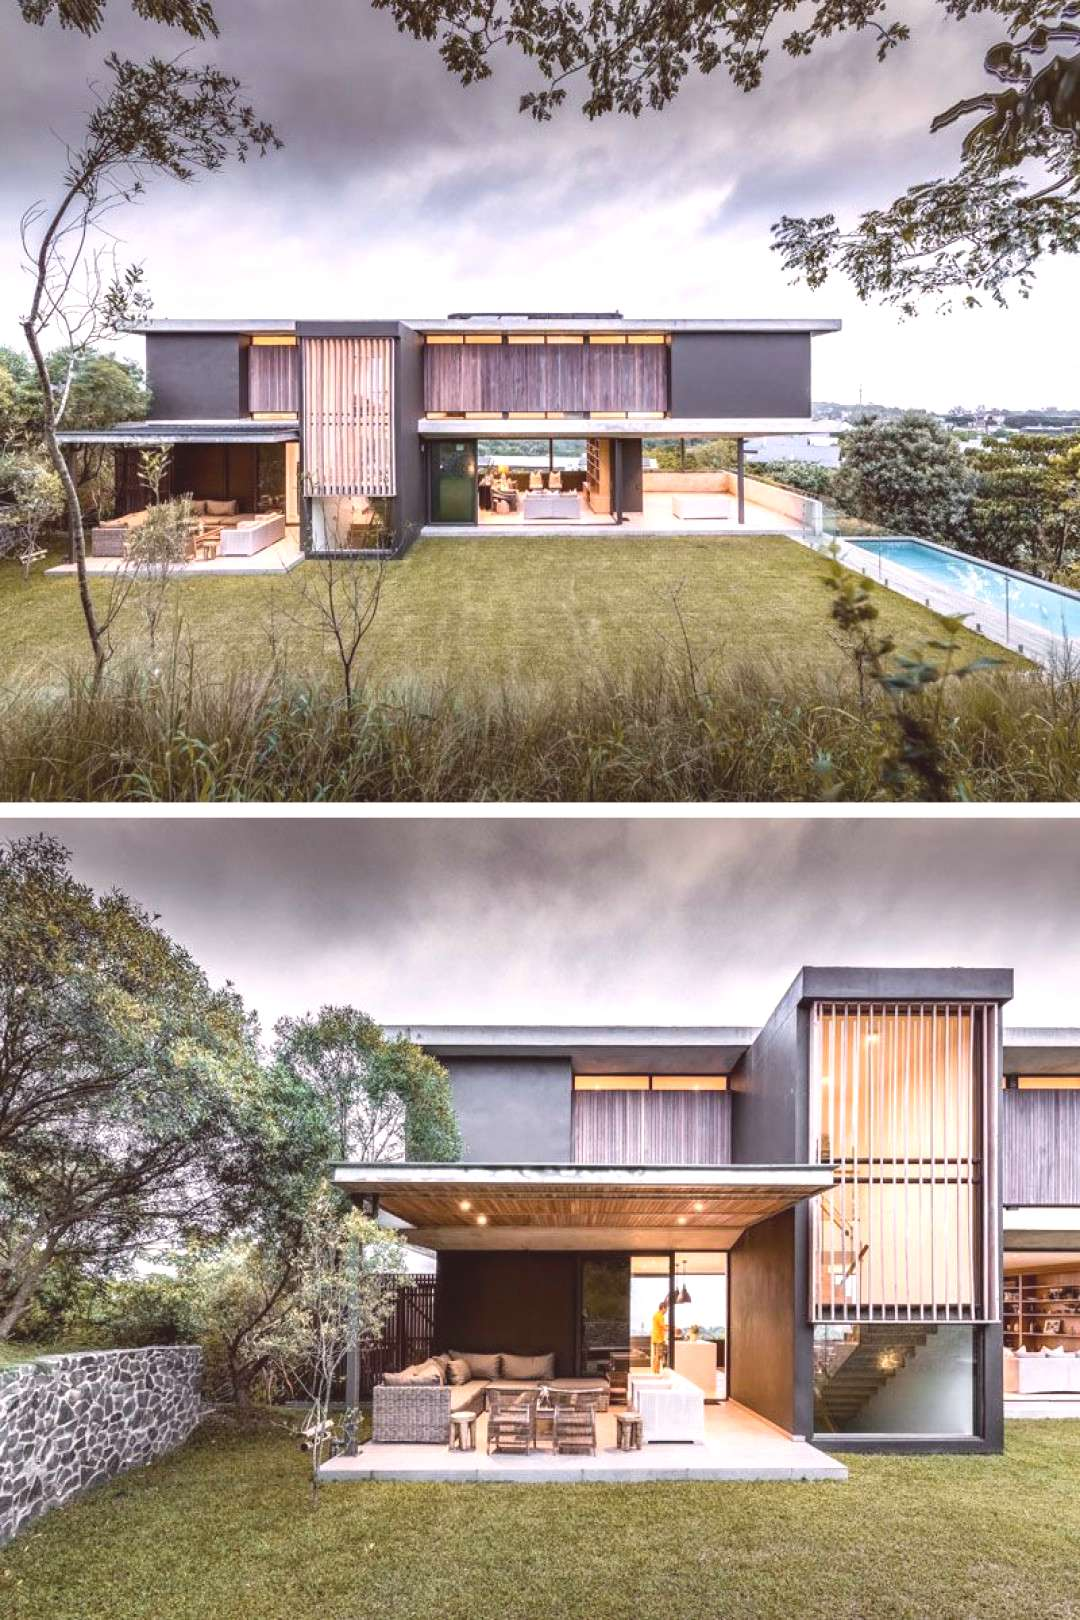 The house seeks to seamlessly blend indoor and outdoor living, and was designed to take advantage o